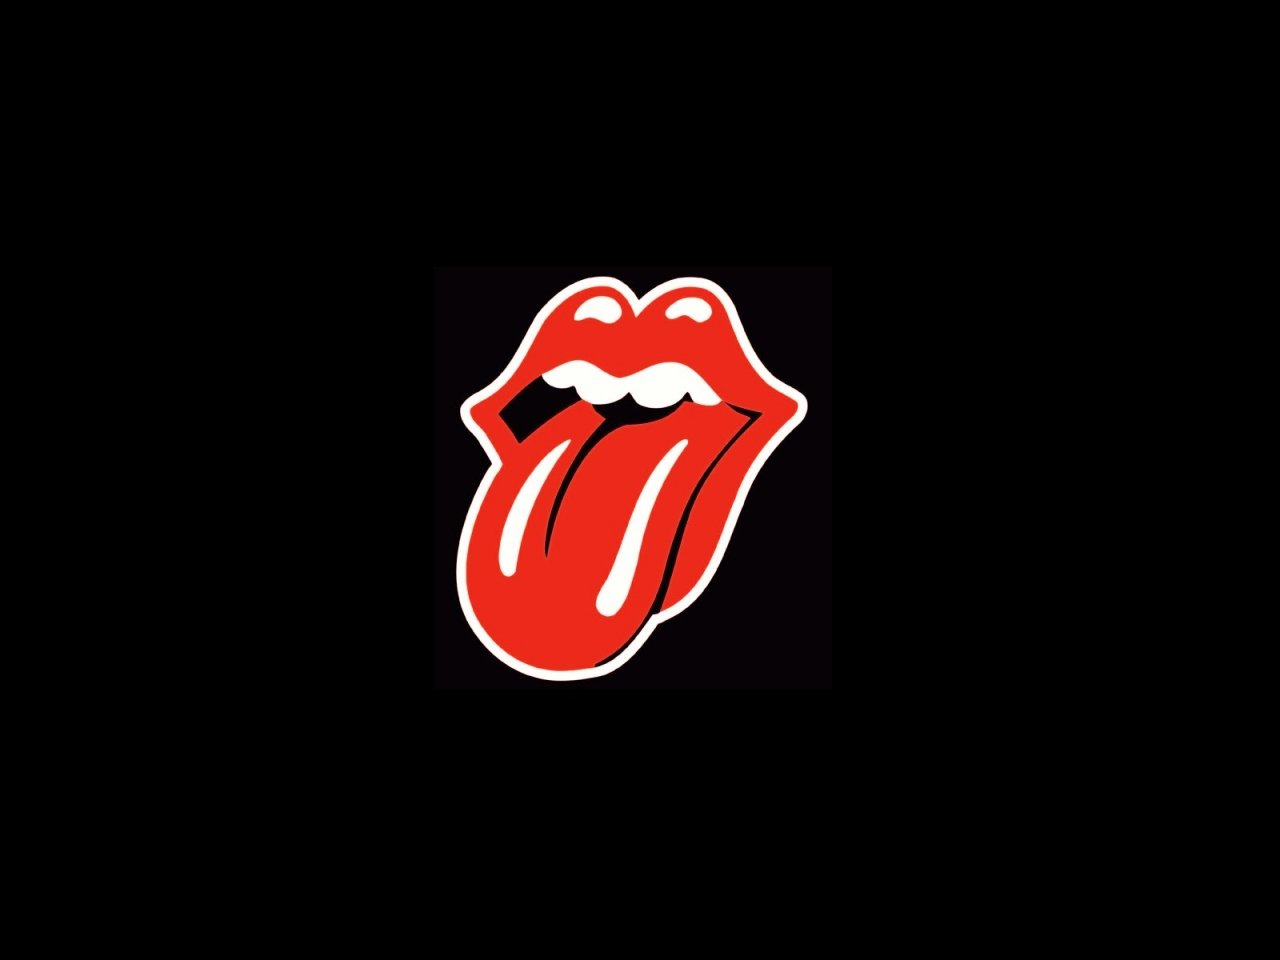 Awesome The Rolling Stones wallpaper The Rolling Stones wallpapers 1280x960